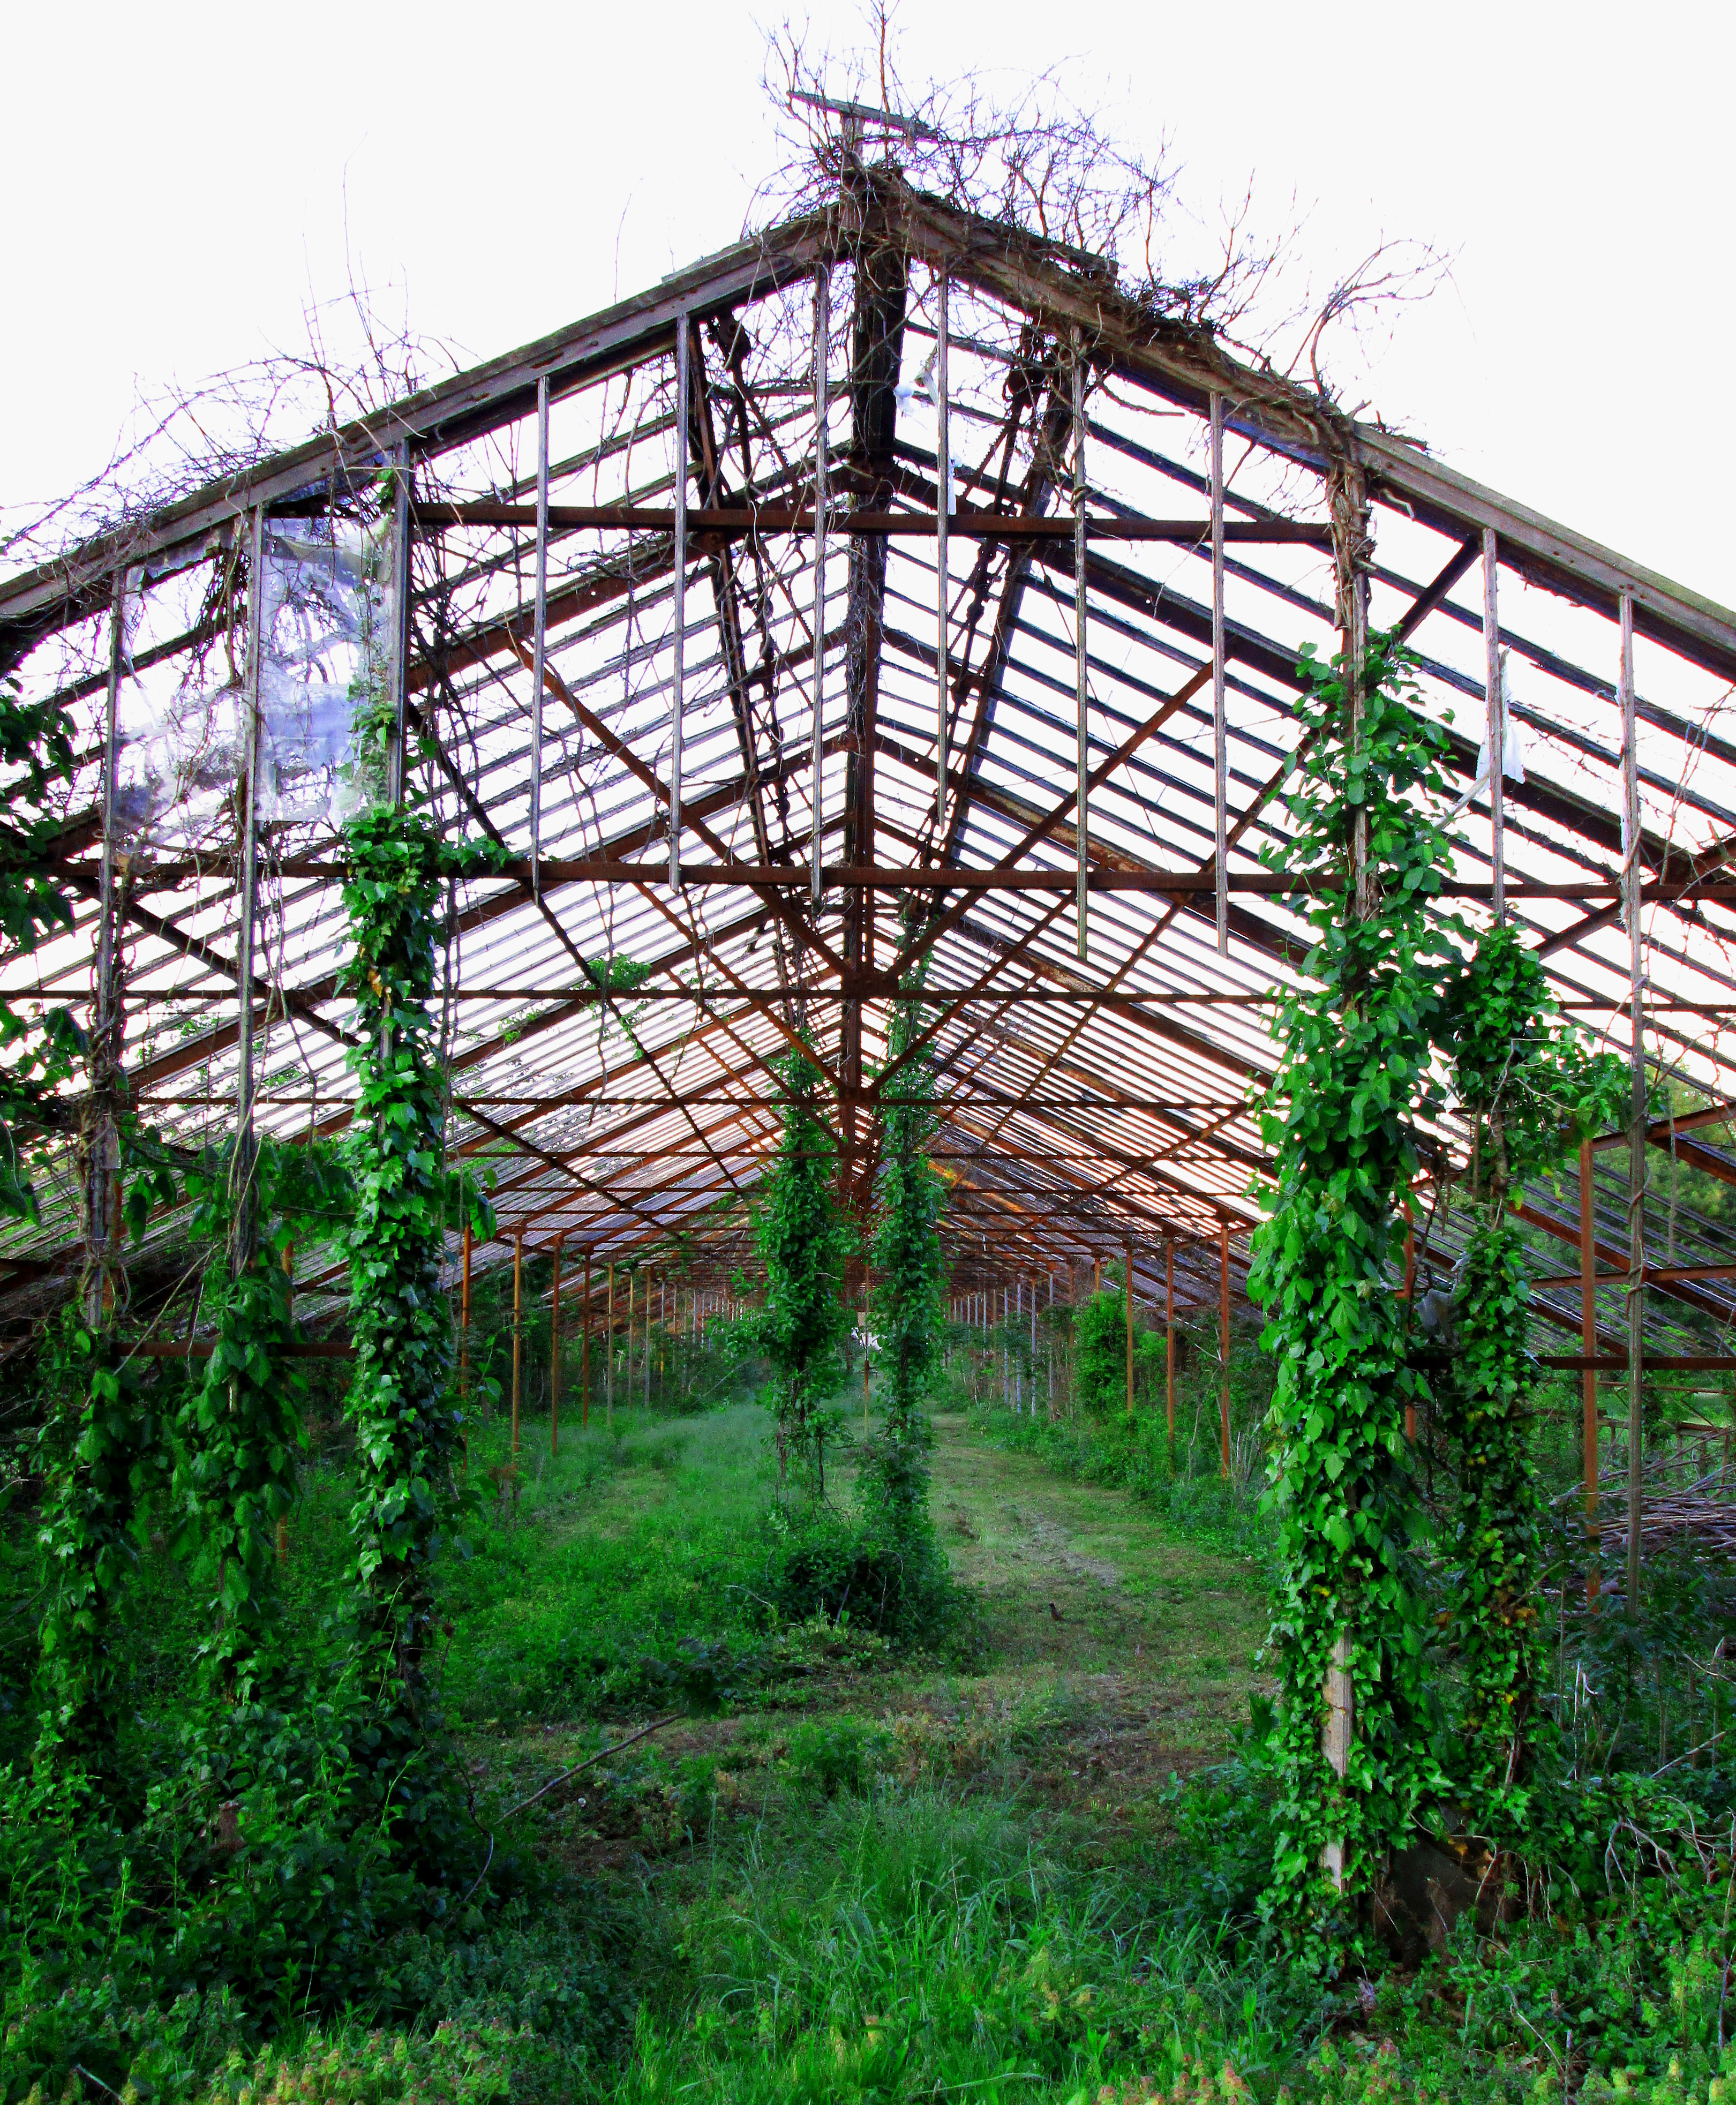 Entrance To Abandoned Greenhouse